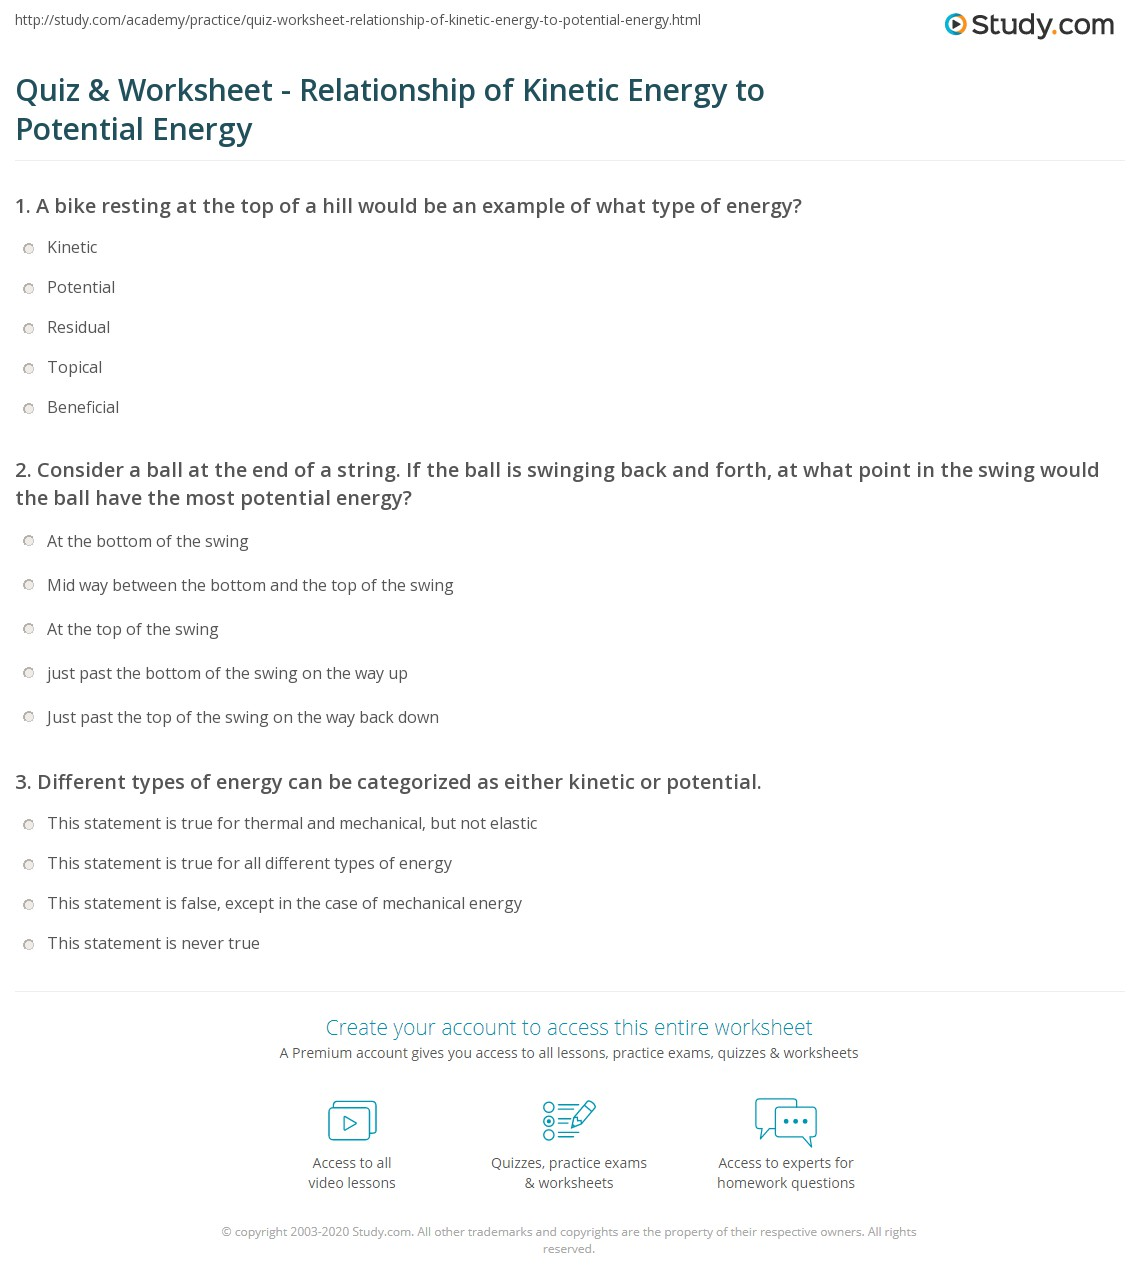 Quiz & Worksheet - Relationship of Kinetic Energy to Potential ...